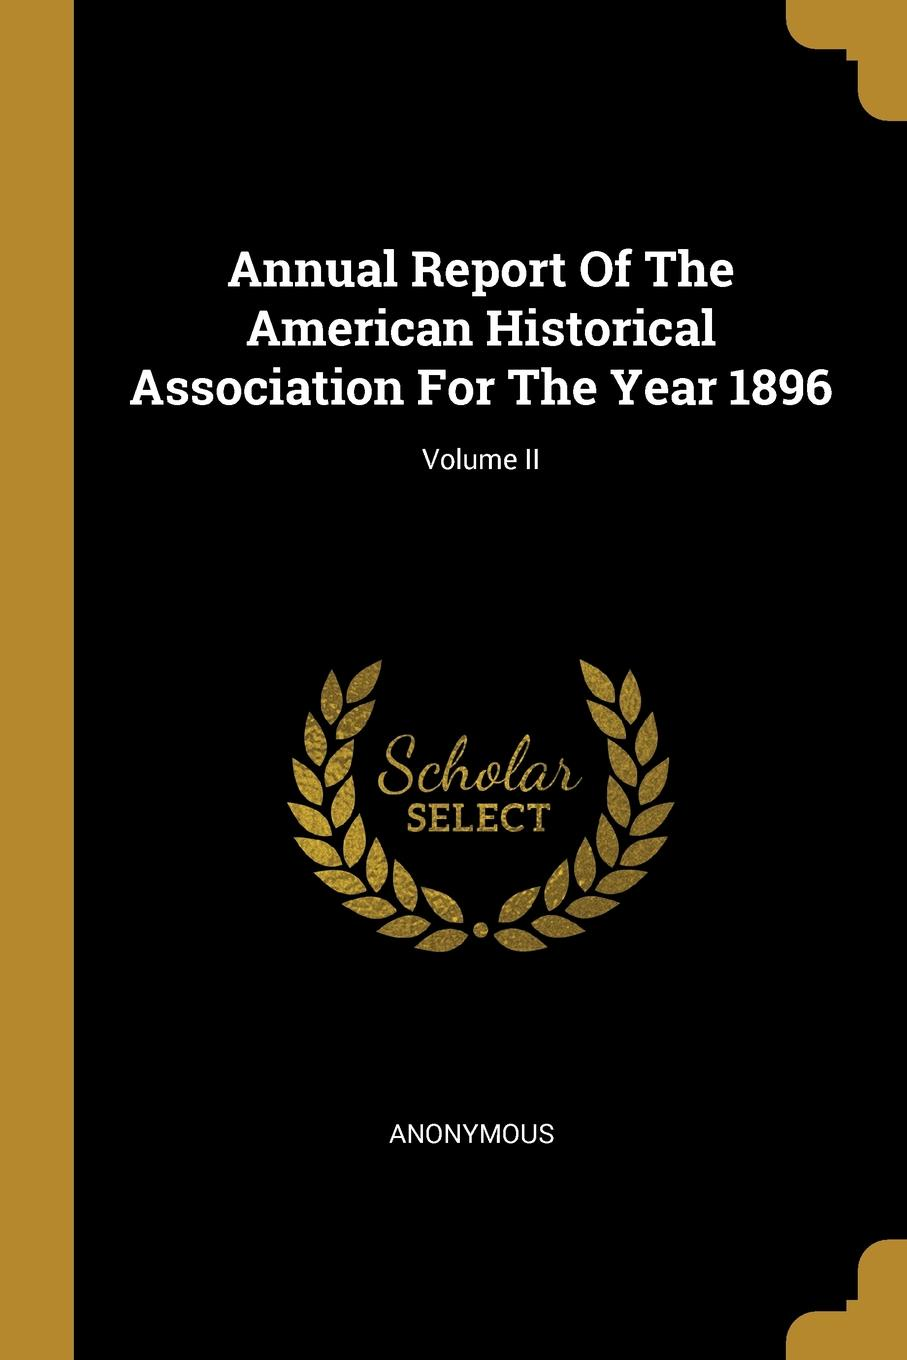 Annual Report Of The American Historical Association For The Year 1896; Volume II